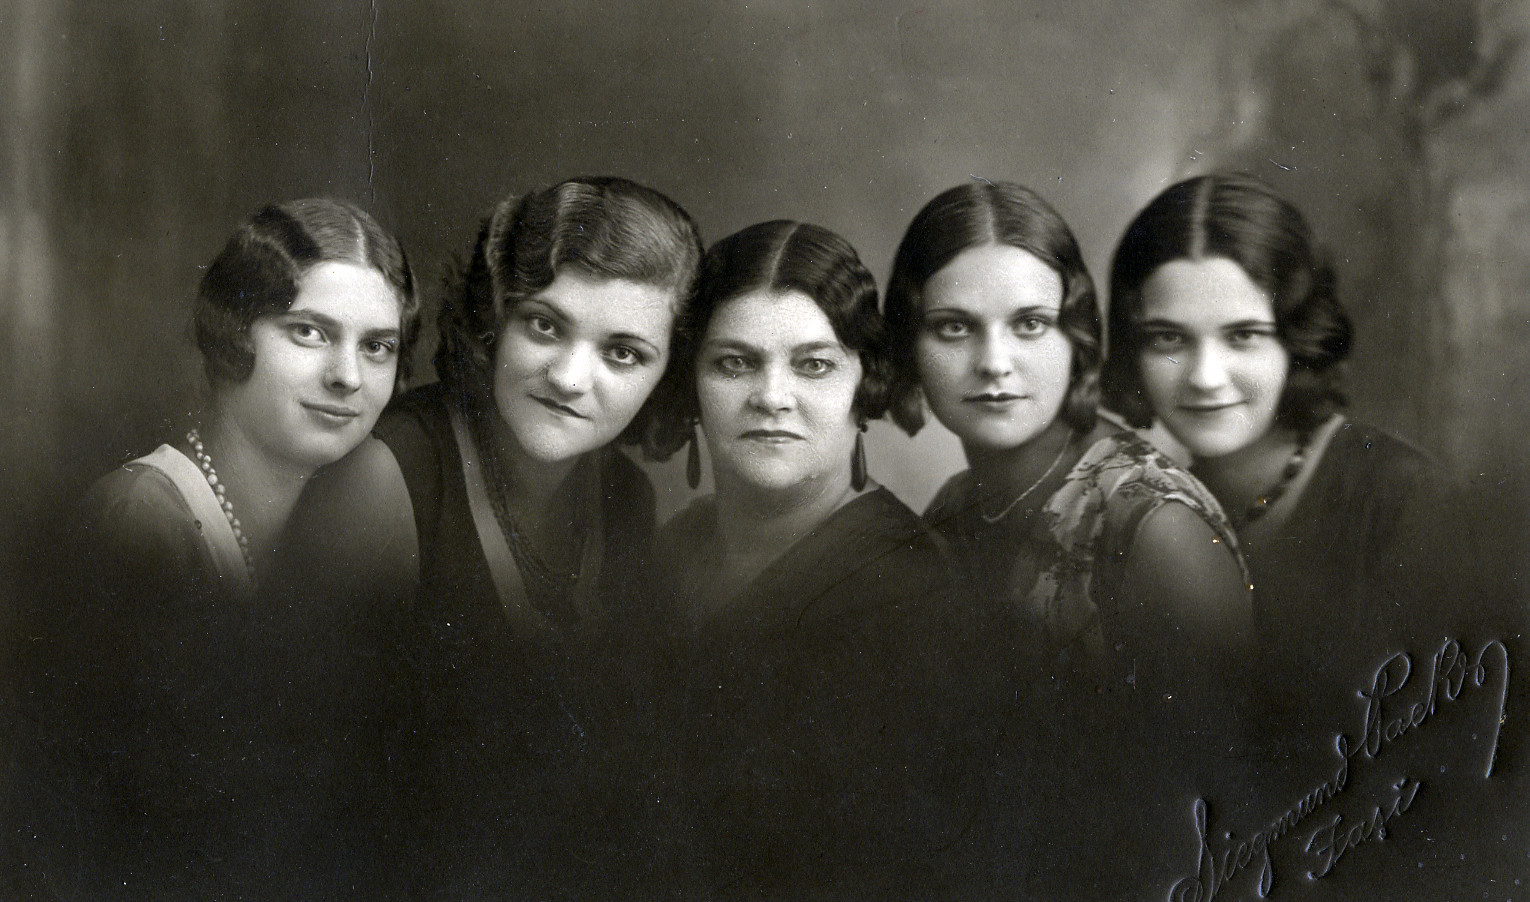 Studio portrait of a Jewish Romanian woman and her four daughters.  Pictured are Fanny Josef (center) and her daughers Maretta, Pepita, Freida, and Charlotte (left to right).